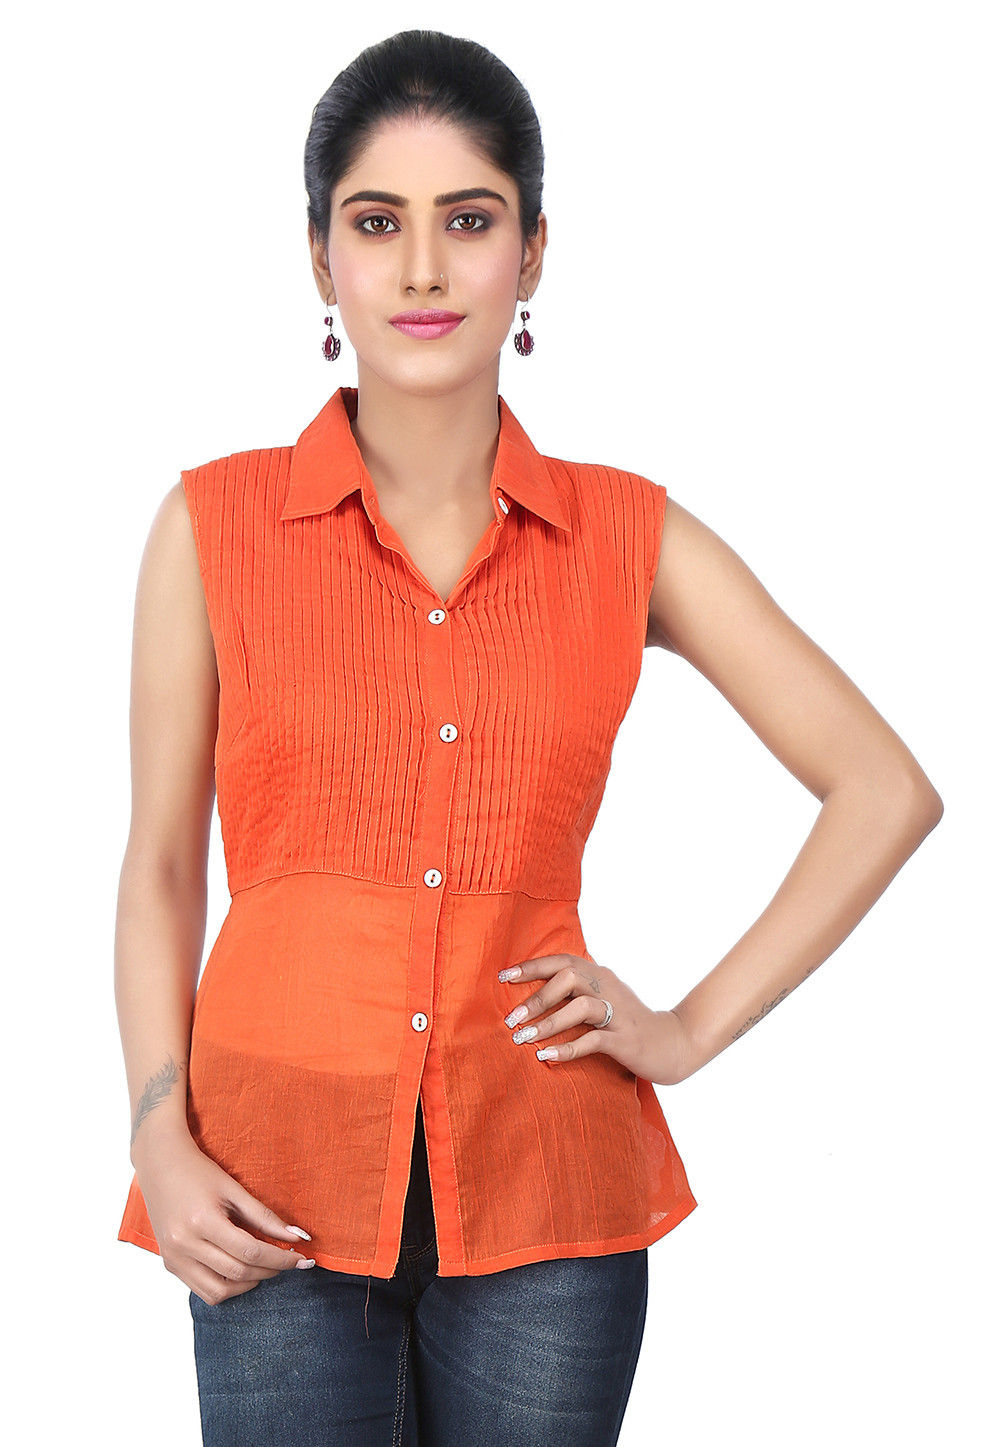 Tucks Cotton Shirt Style Top in Orange